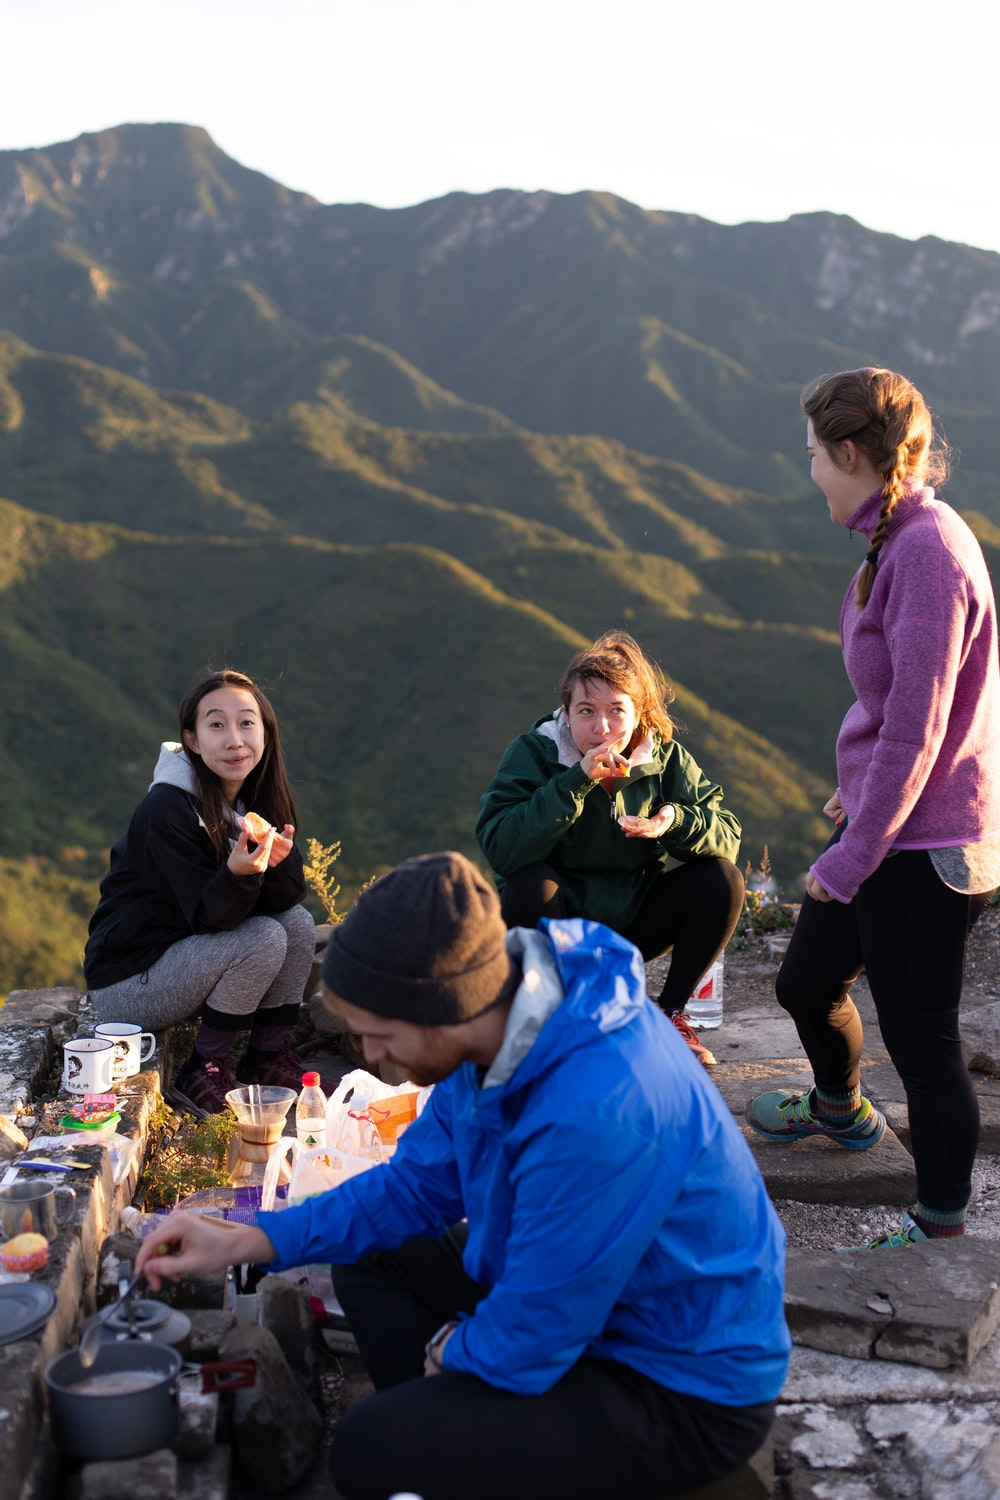 three woman and one man eating on top hill during daytime